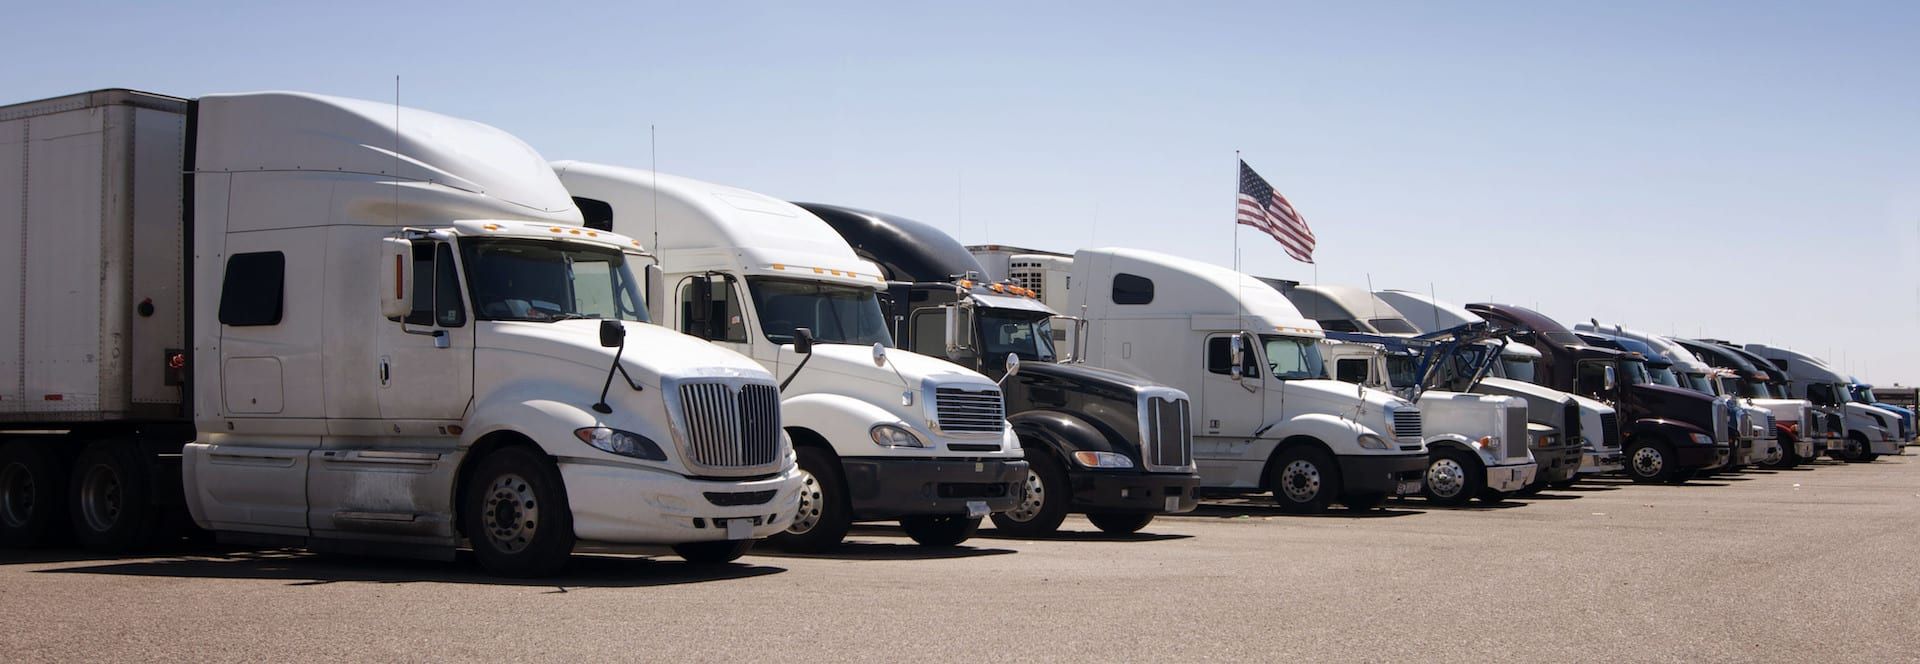 HOURS OF SERVICE RULES FOR COMMERCIAL TRUCK DRIVERS TRAVELING THROUGH ATLANTA